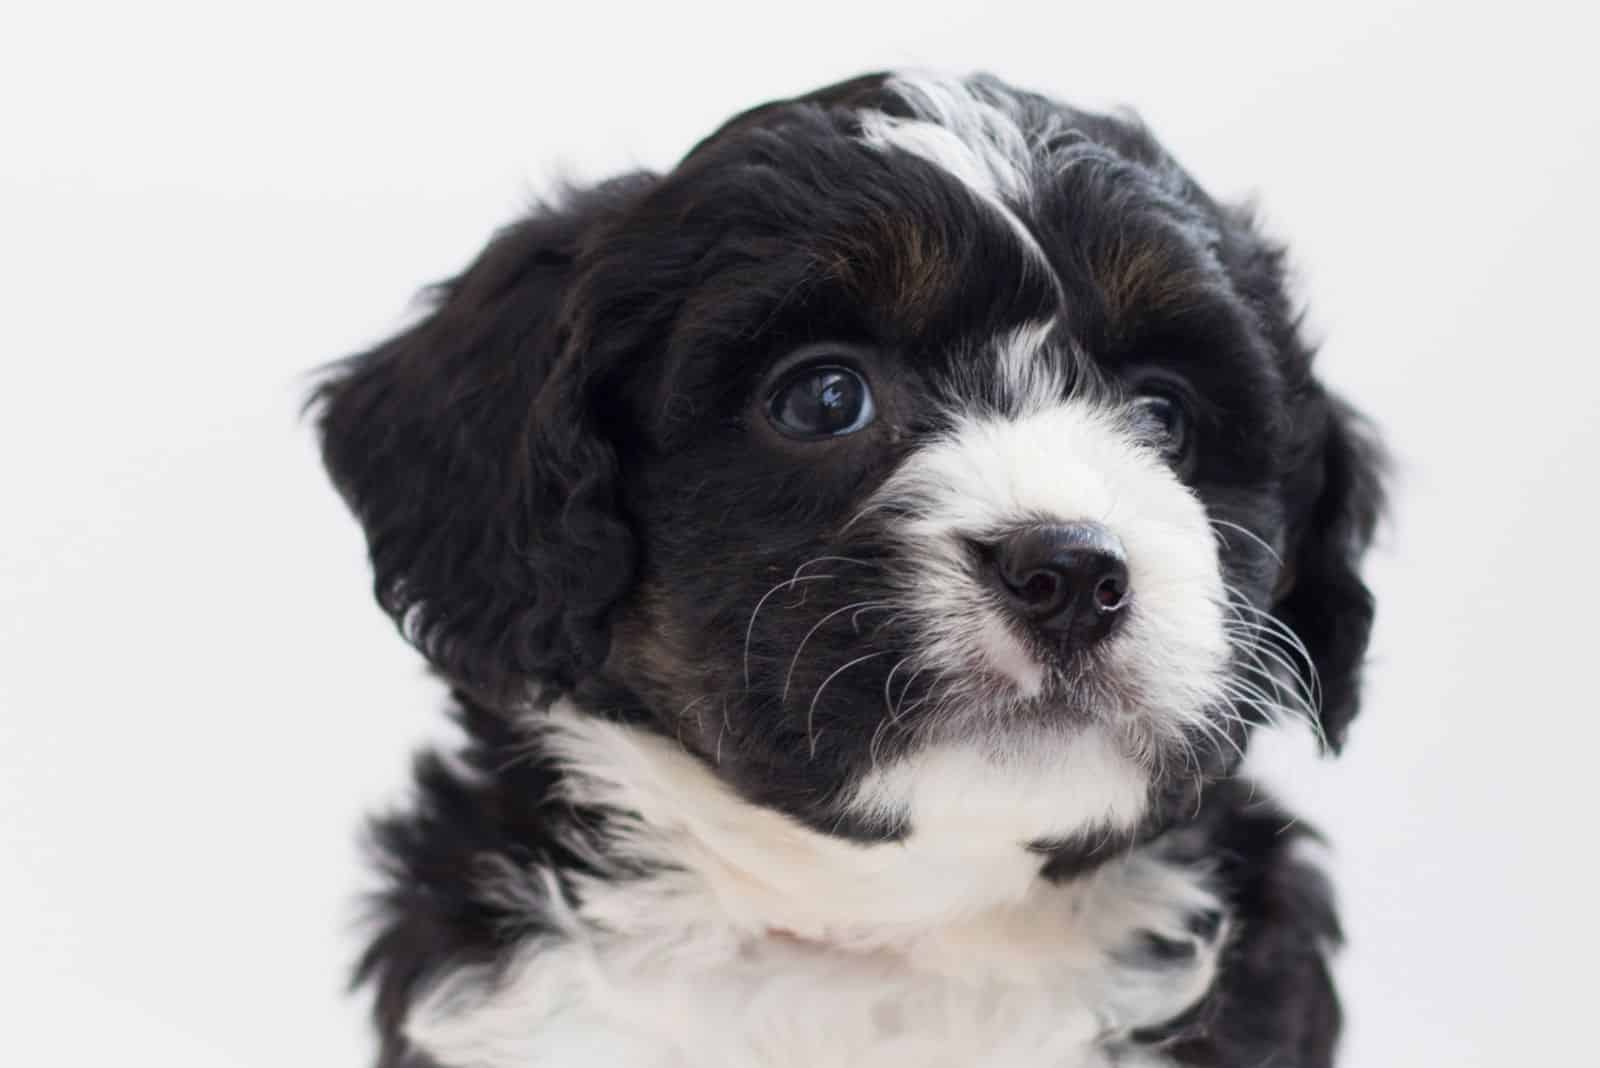 white and black puppy of bernedoodle breed